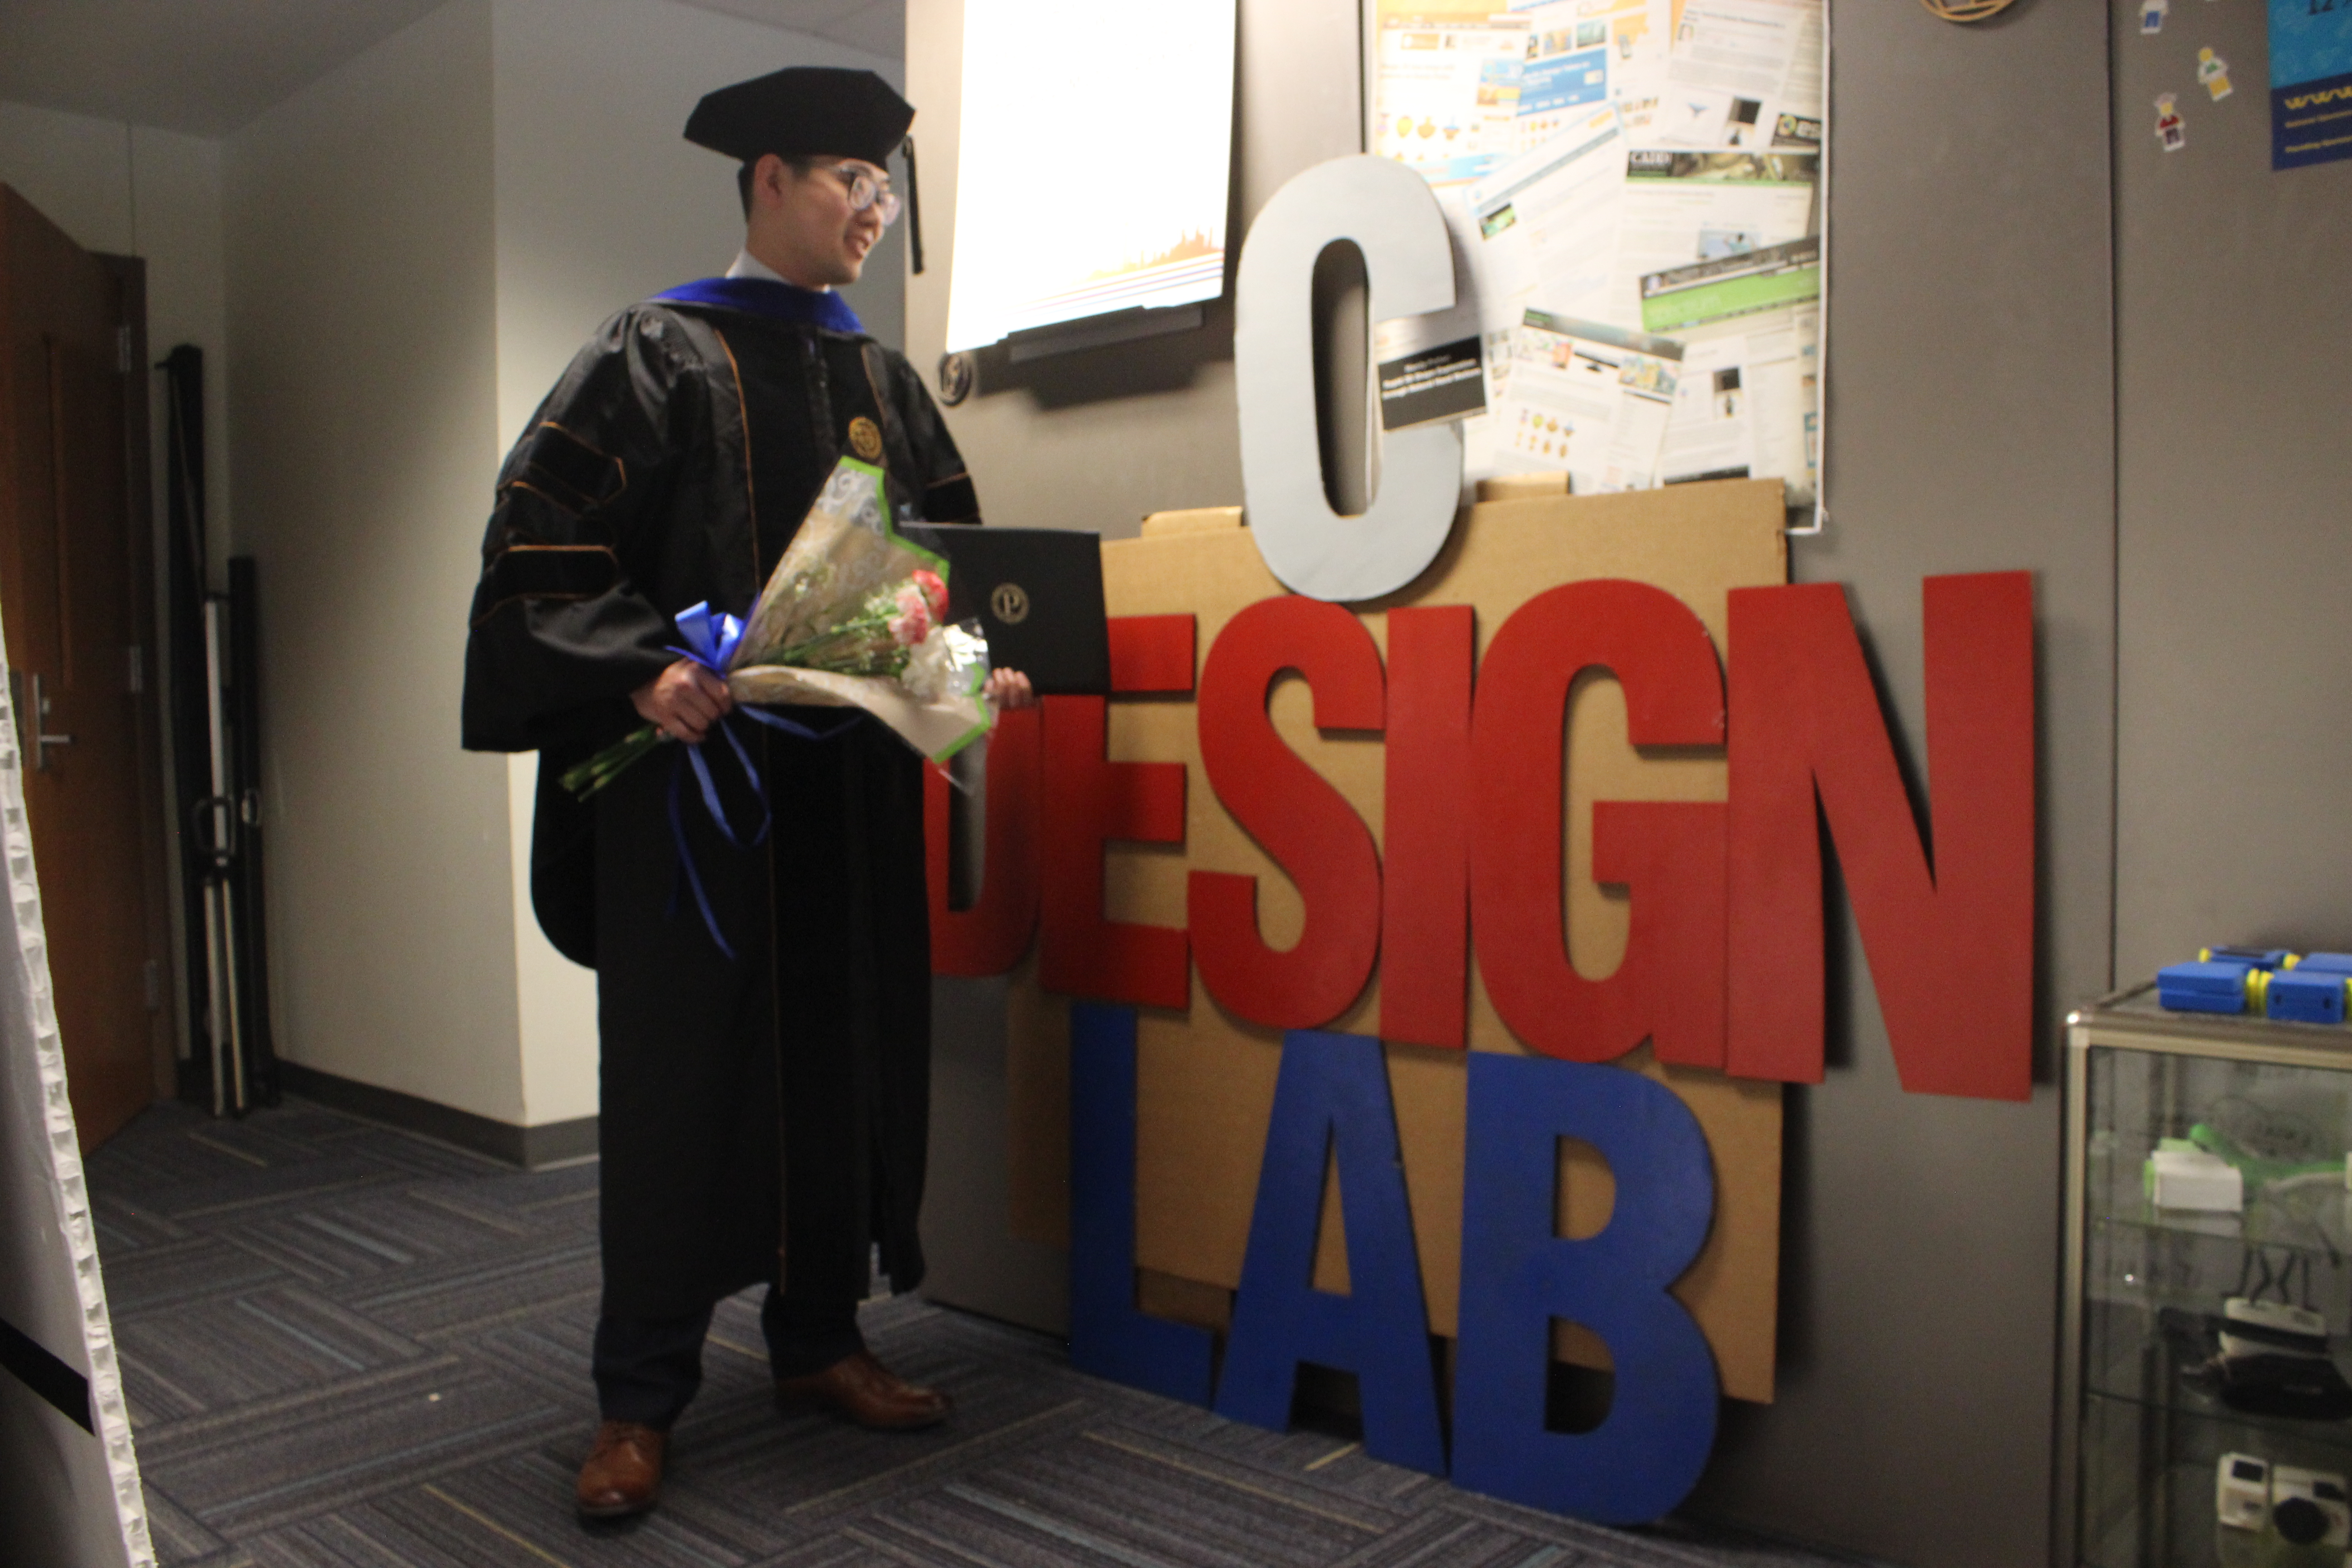 Congratulations to Dr. Ke Huo for receiving his PhD degree in Mechanical Engineering!